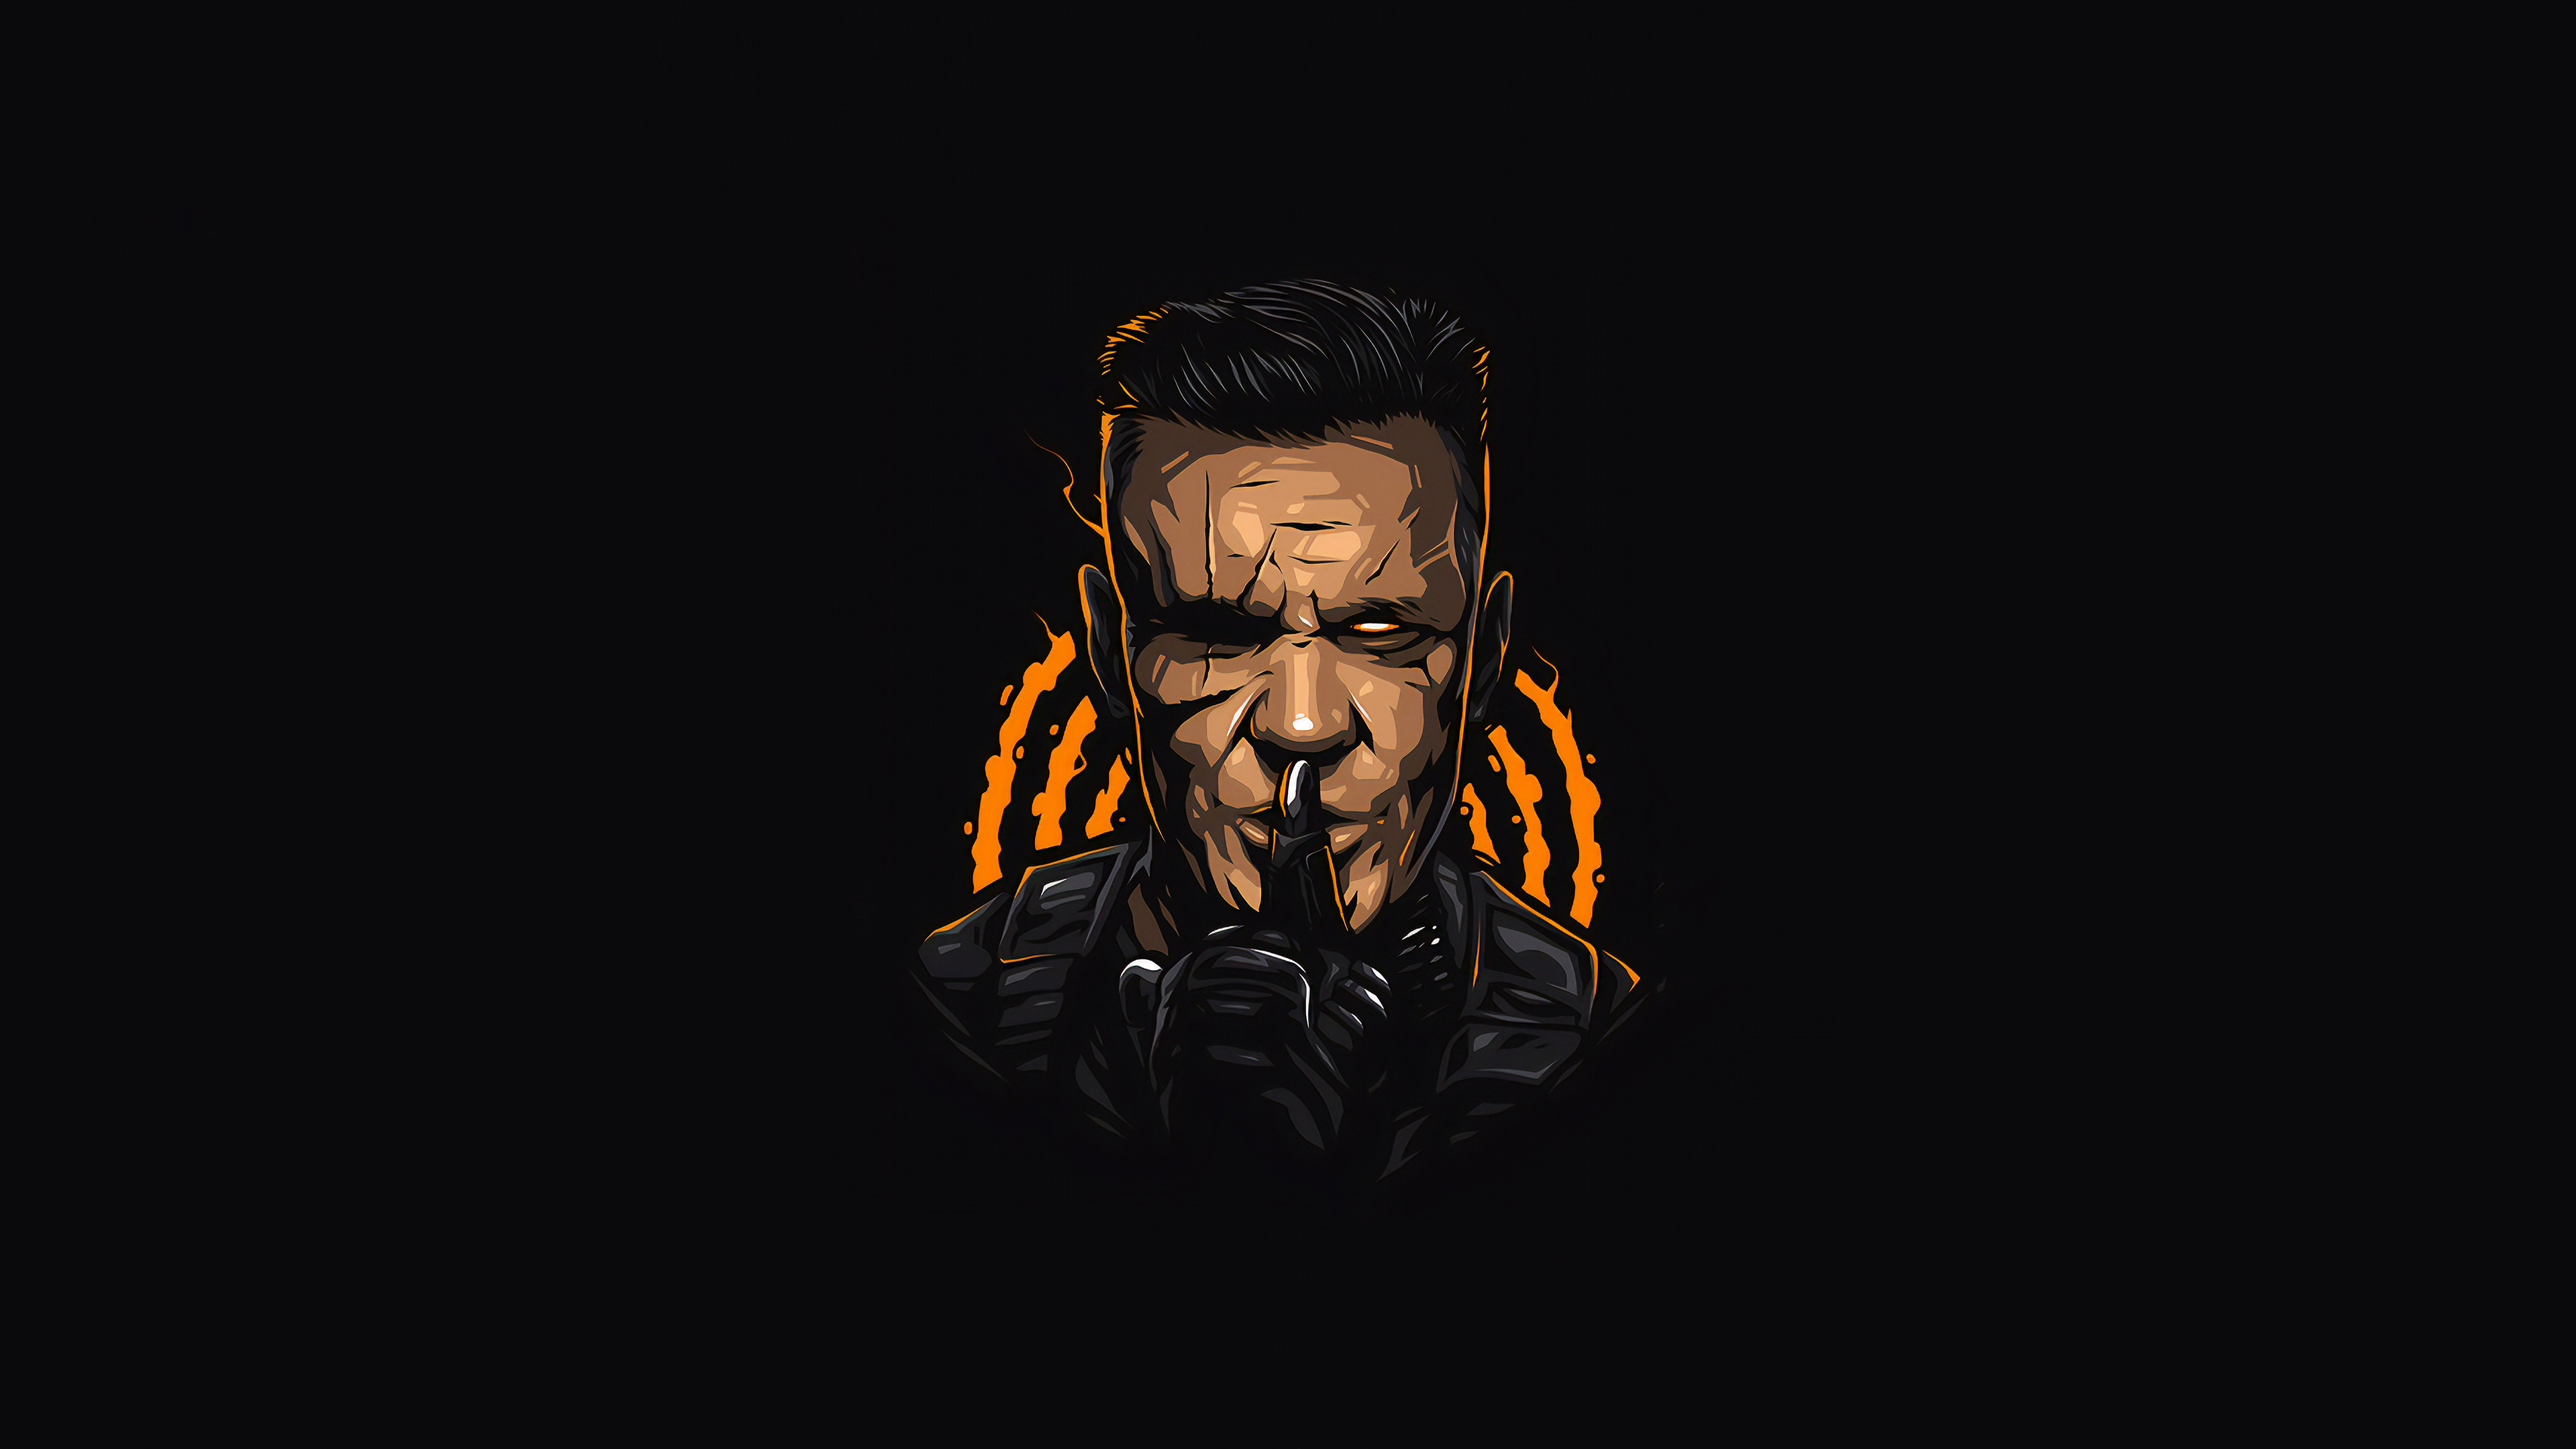 Cable says Shh.jpg